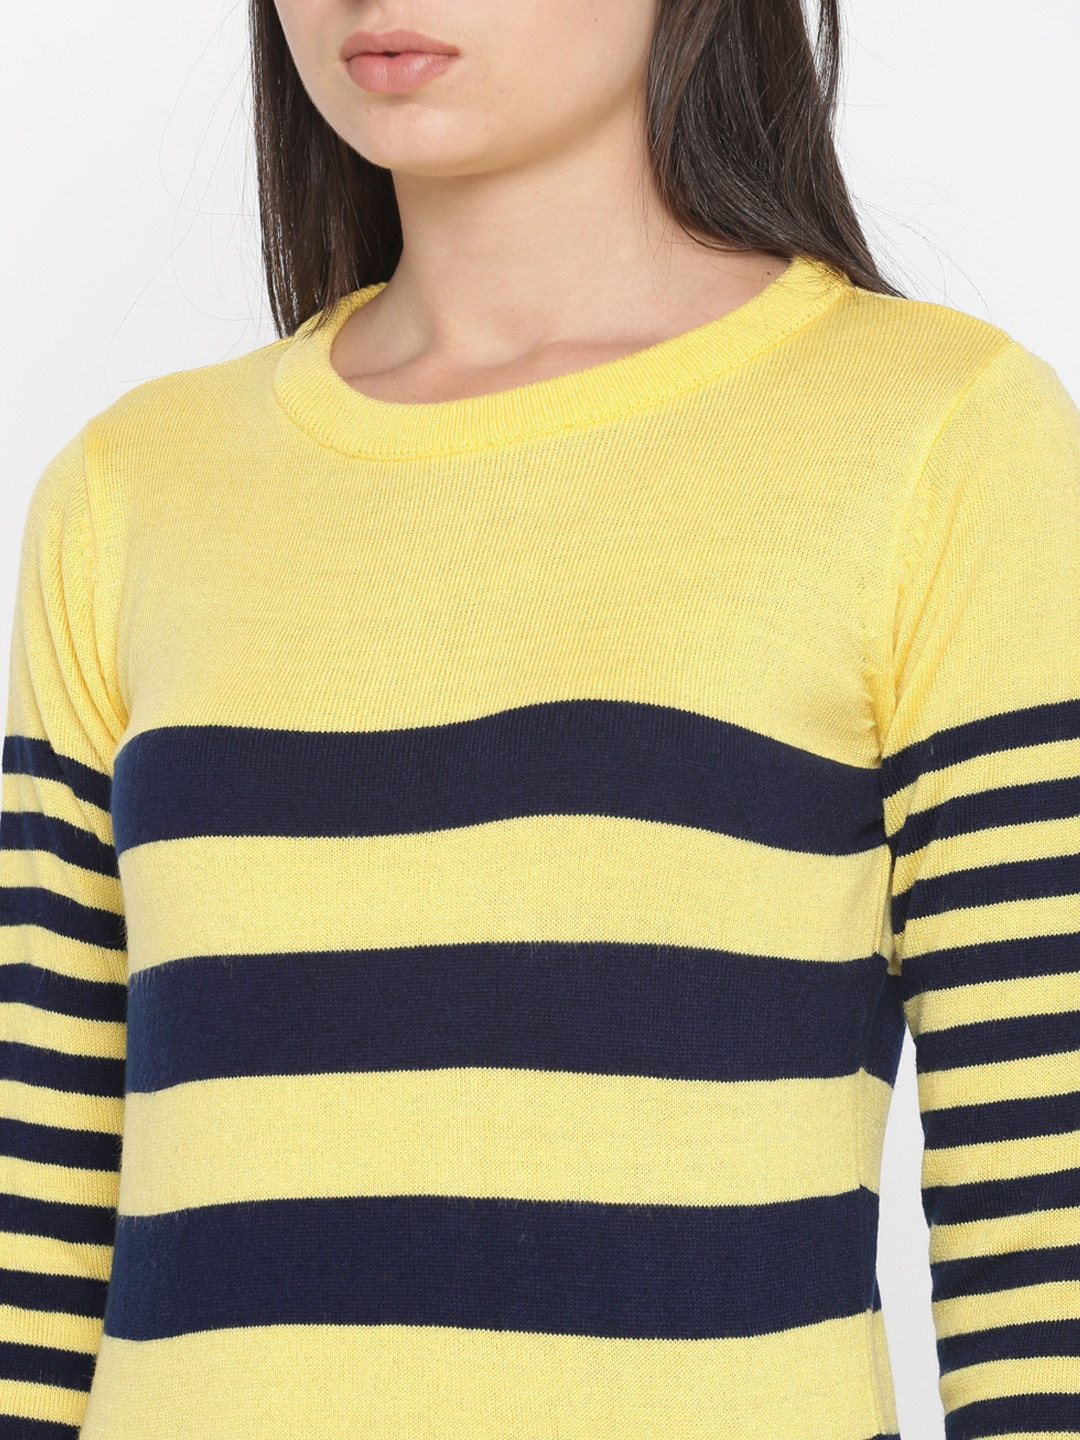 Buy Roadster Women Navy Blue Yellow Striped Pullover Sweaters